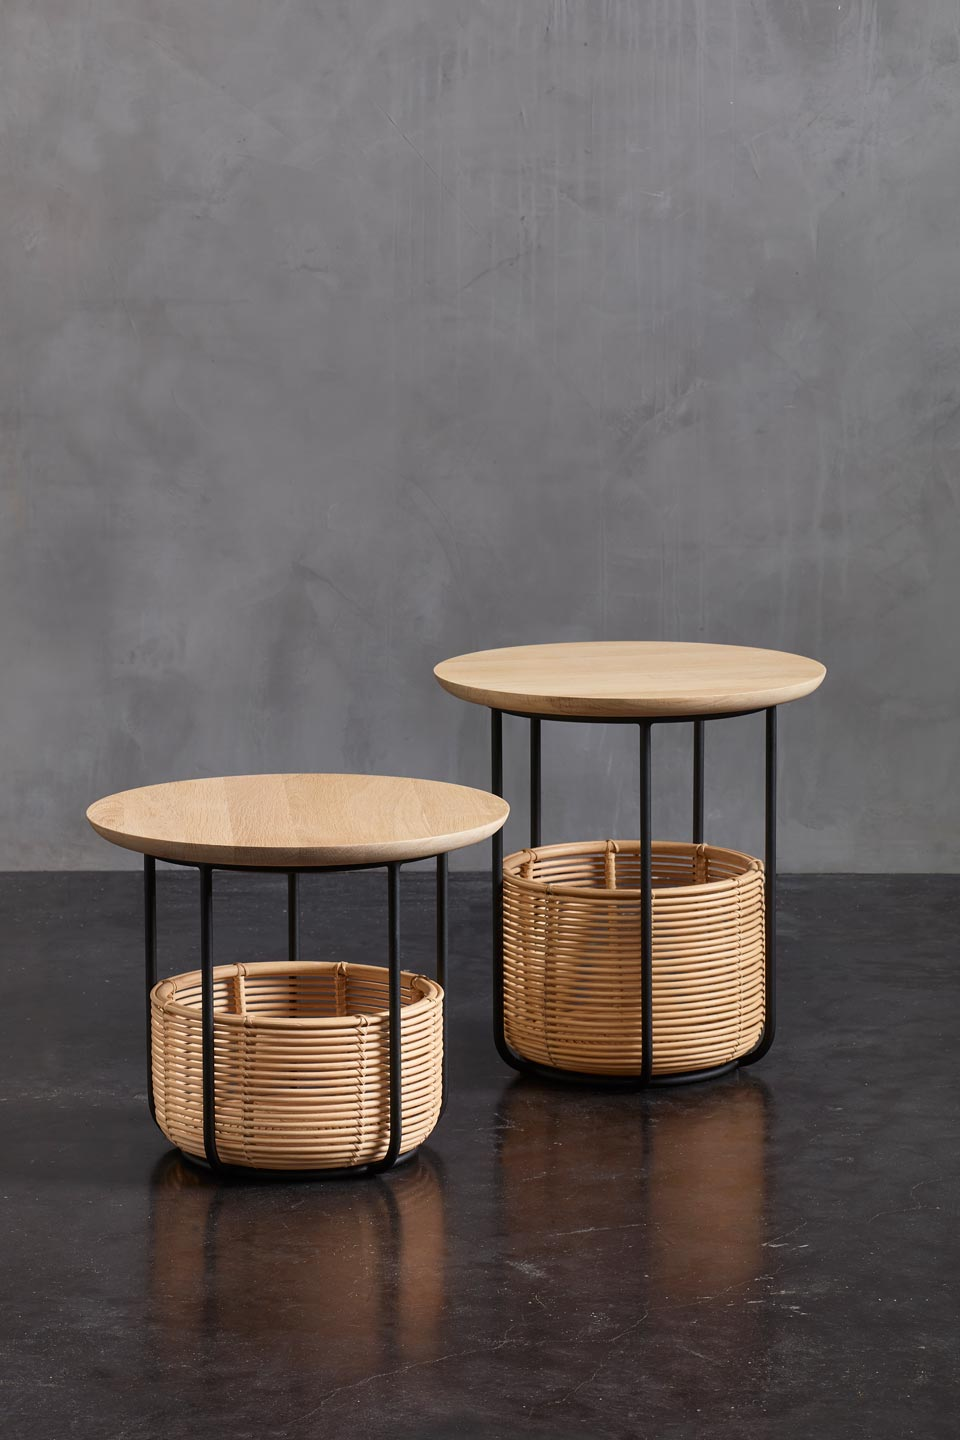 Picture of: Vivi Small Table And Basket In Black Metal And Rattan Vincent Sheppard Contemporary Design Lighting Ref 18110063